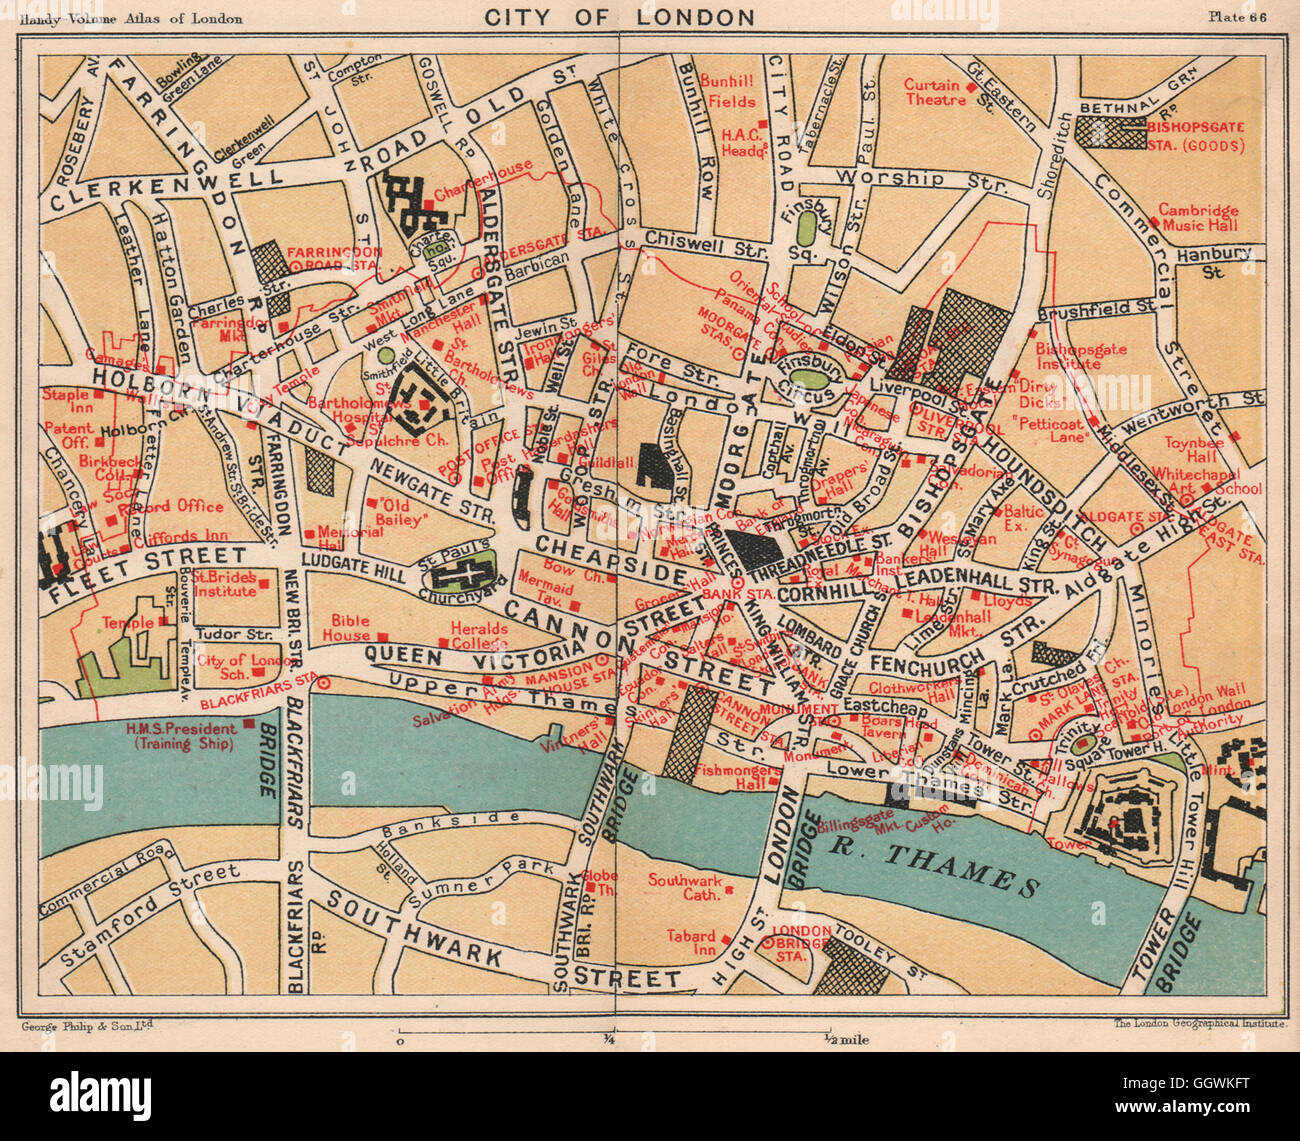 CITY OF LONDON. Public buildings Livery companies Exchanges Embassies, 1932 map - Stock Image